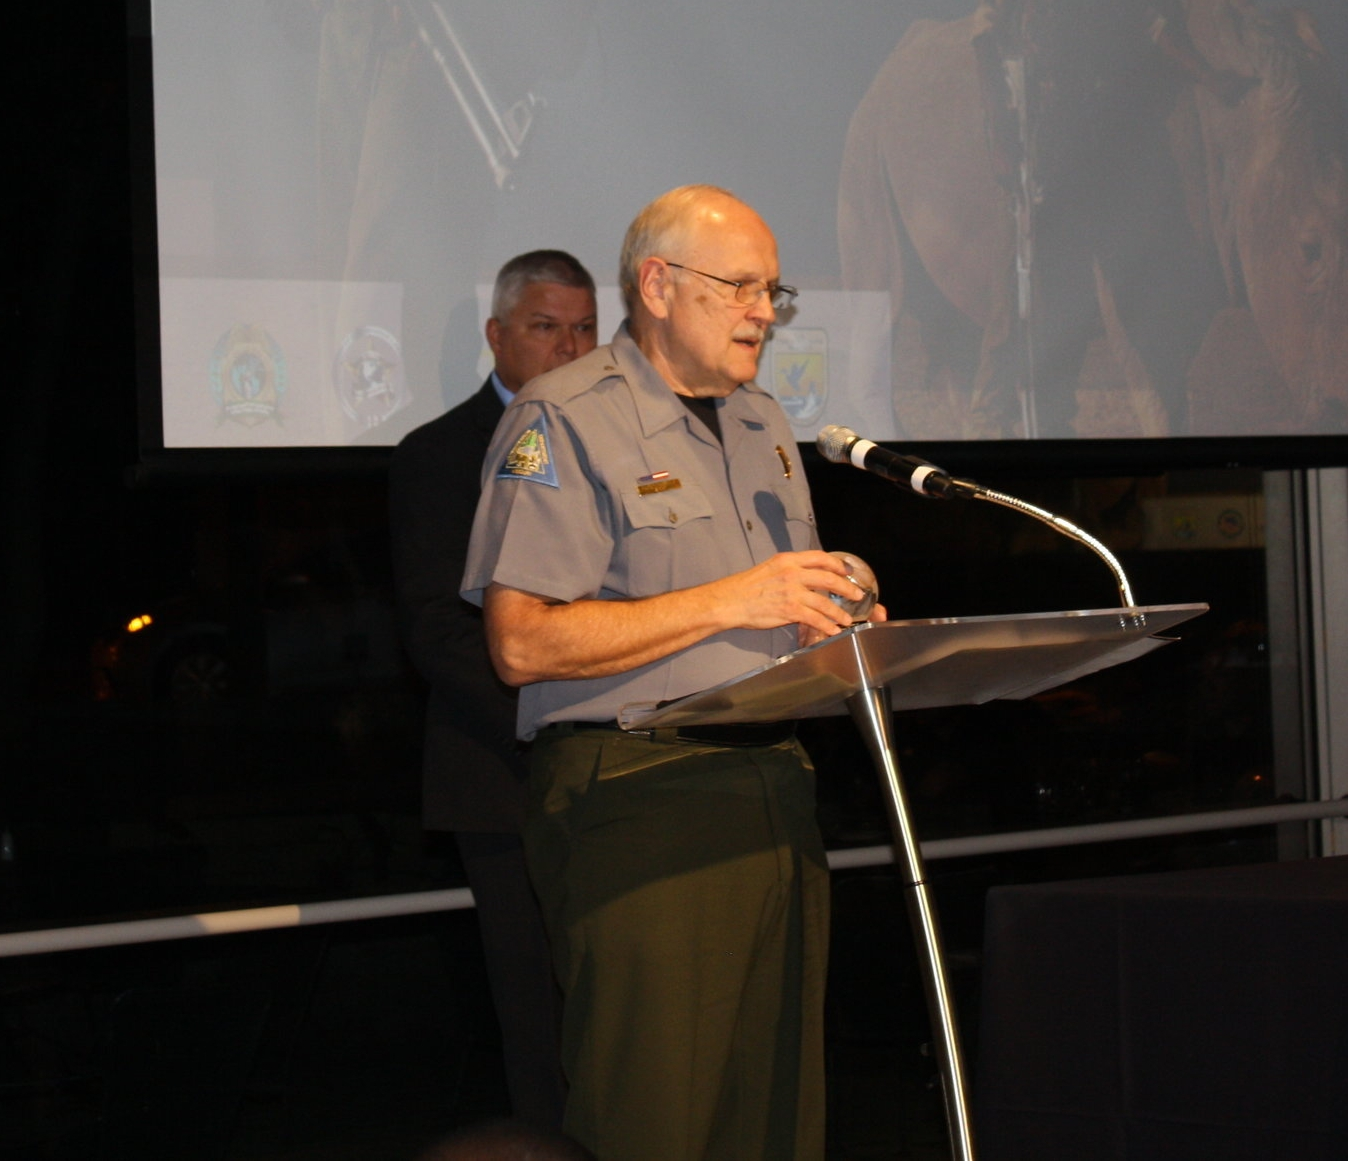 Larry Yamnitz, Chief of the Protection Division of the Missouri Department of Conservation